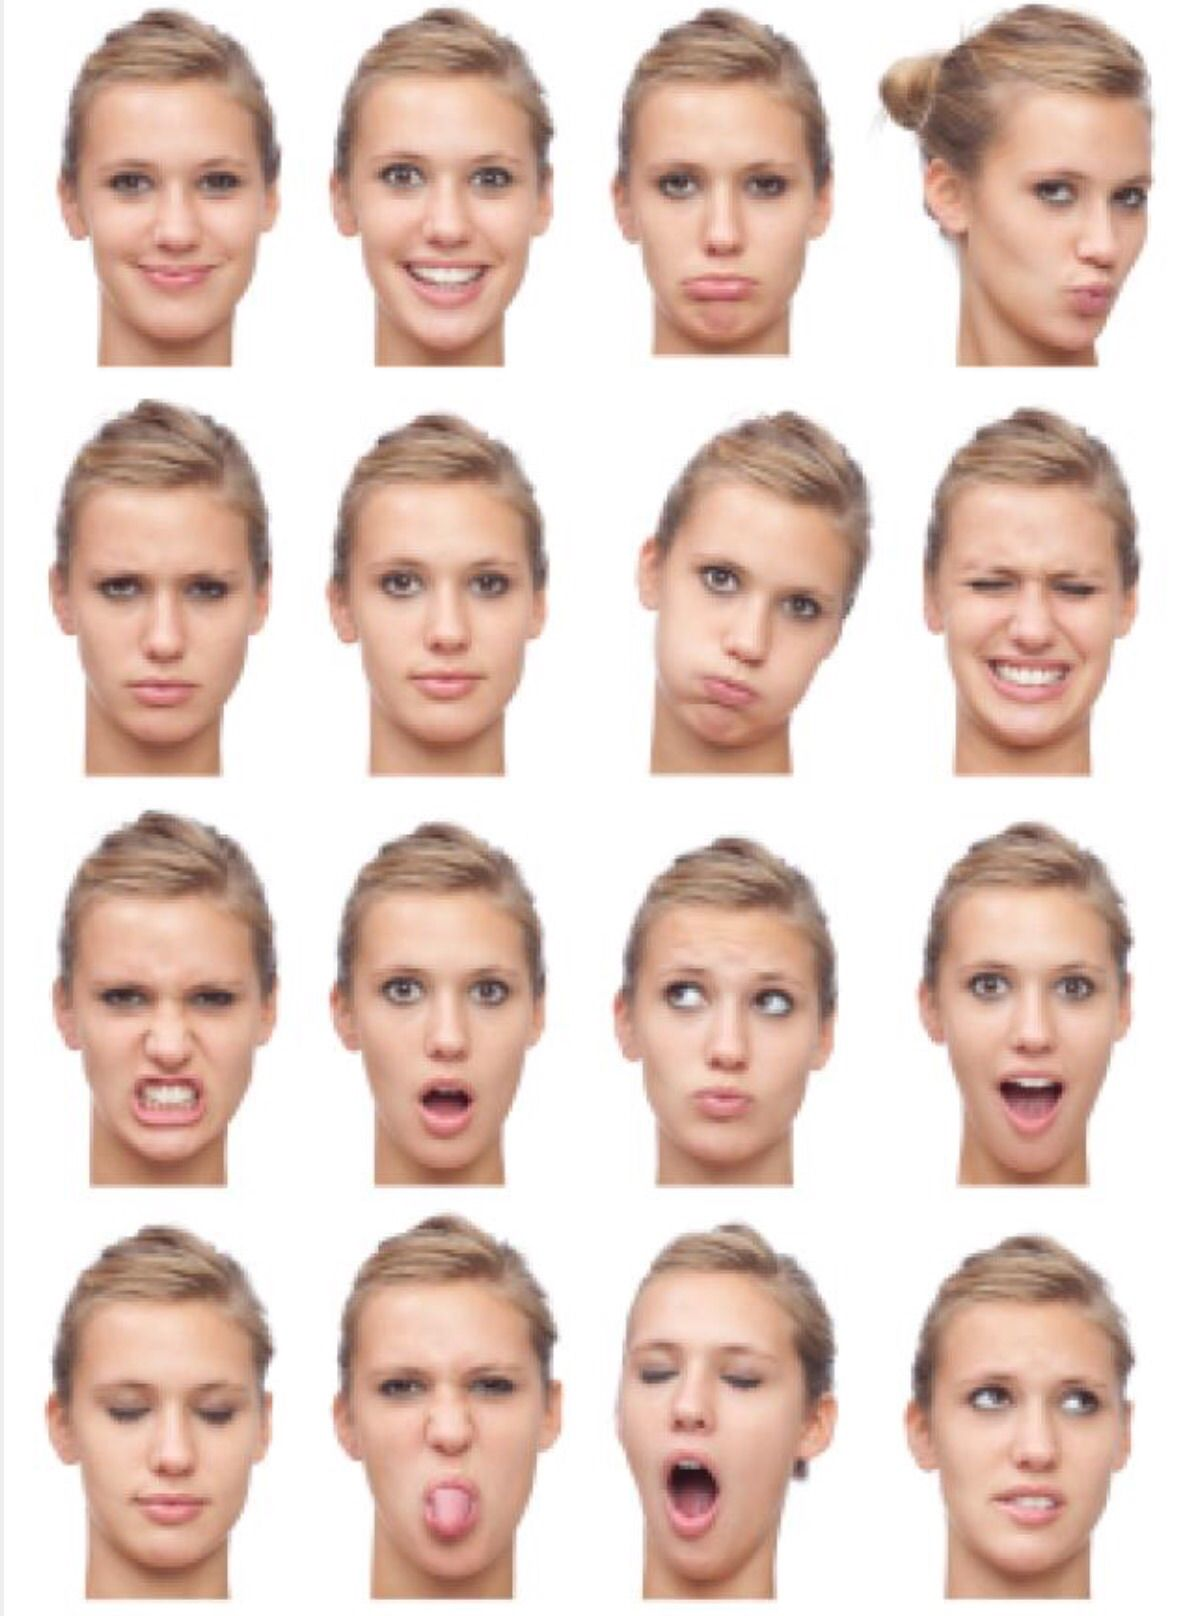 Image Result For Body Language Facial Expressions